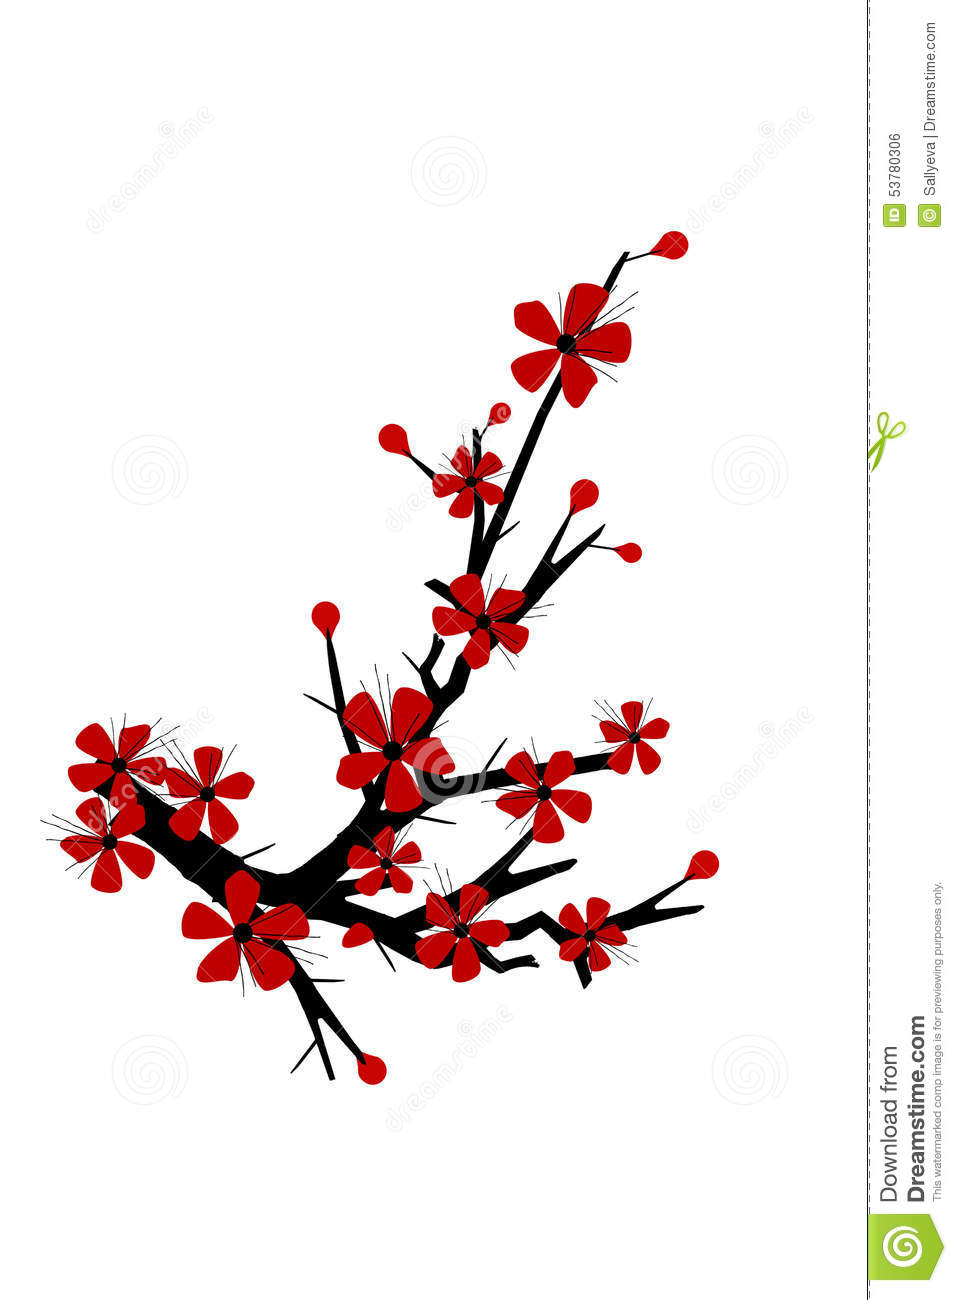 Cherry Blossom Tree Silhouette Stock Vector - Image: 53780306